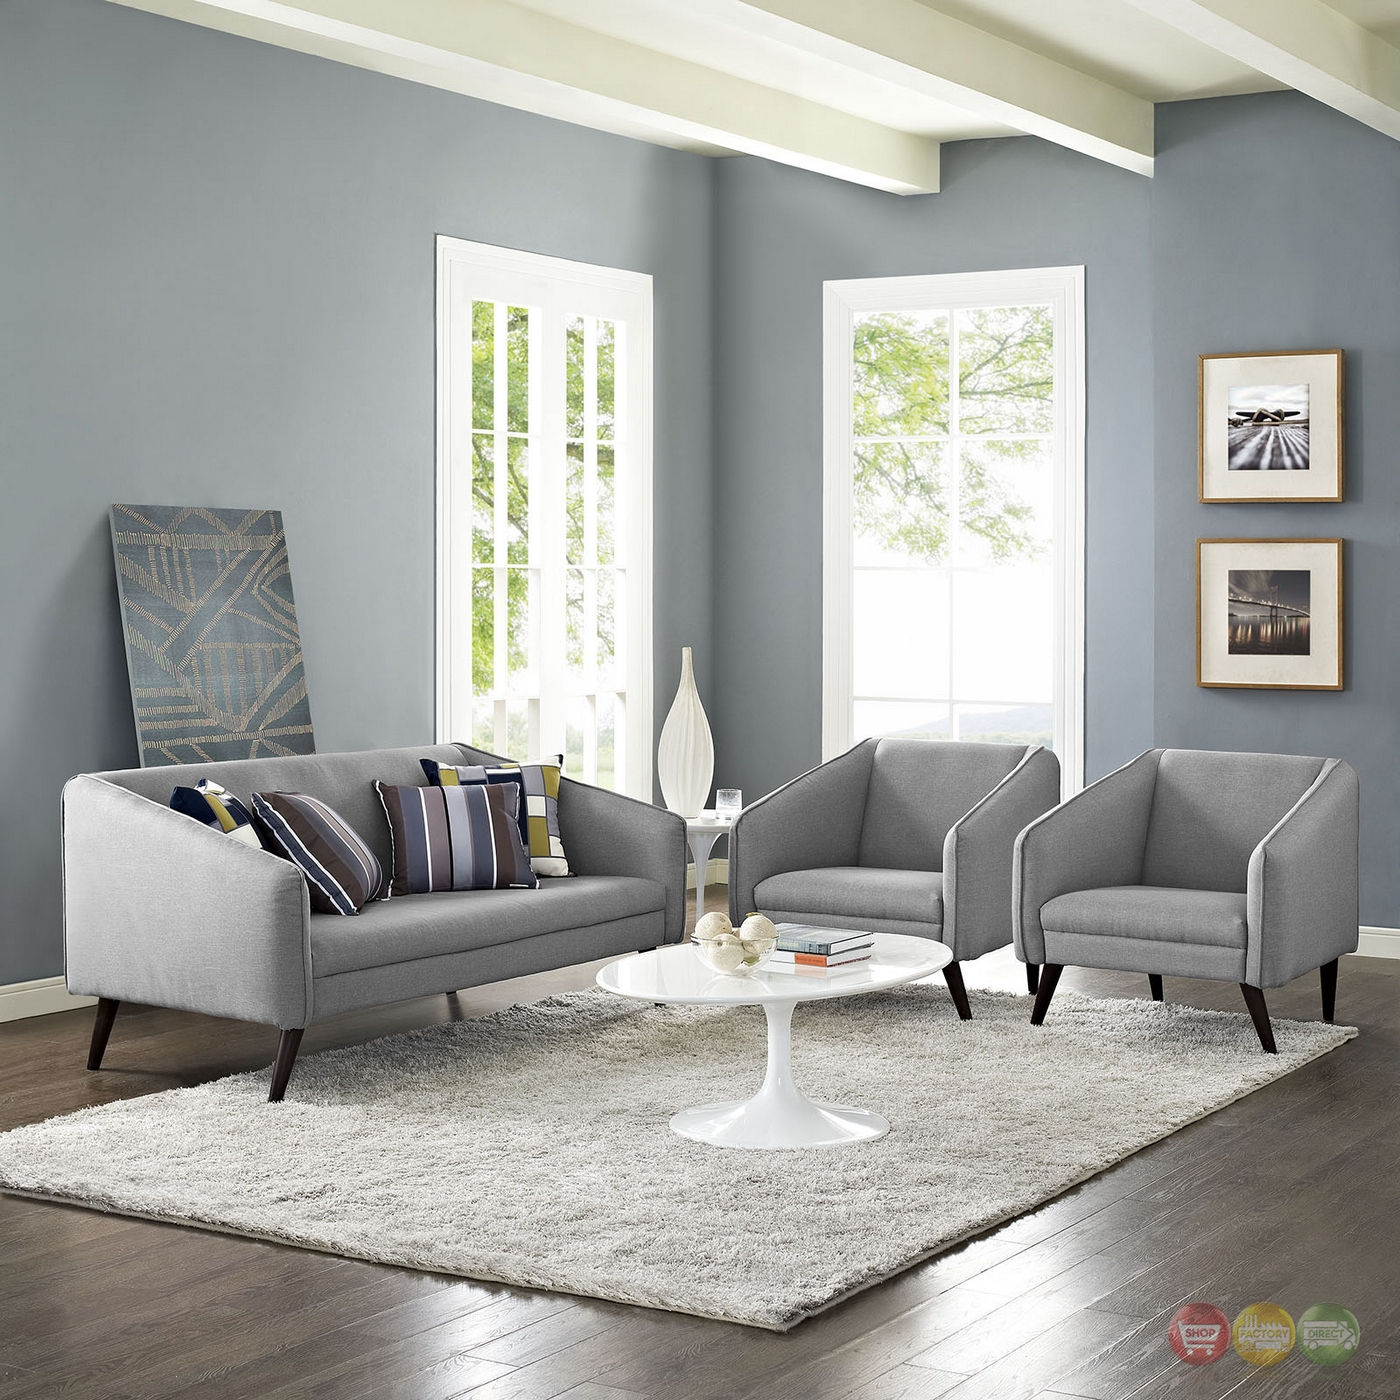 mid century modern slide 3 pc sofa armchairs living room set light gray. Black Bedroom Furniture Sets. Home Design Ideas